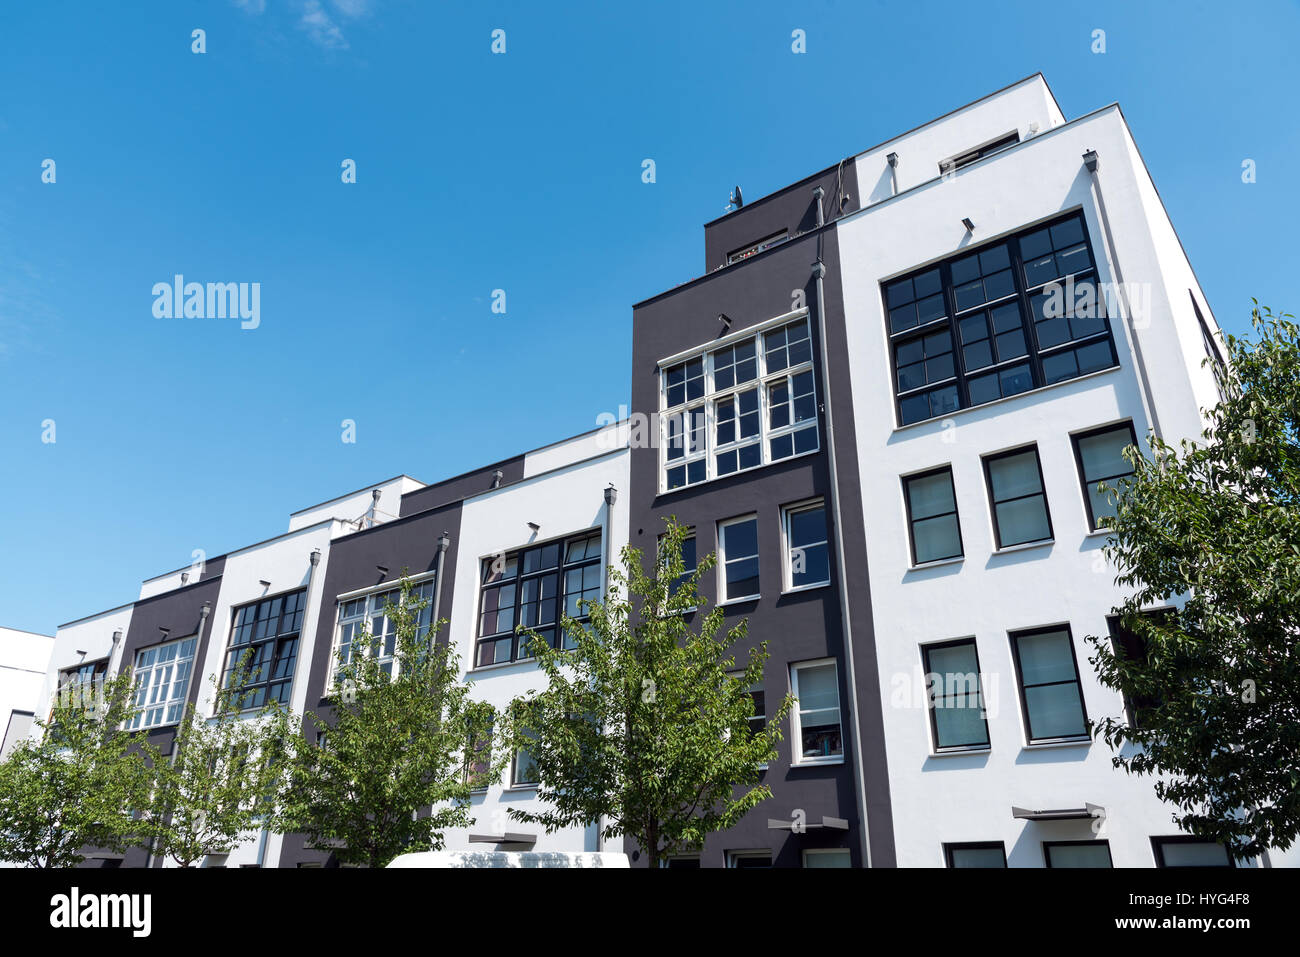 Modern Row Houses Seen In Berlin Germany Stock Photo